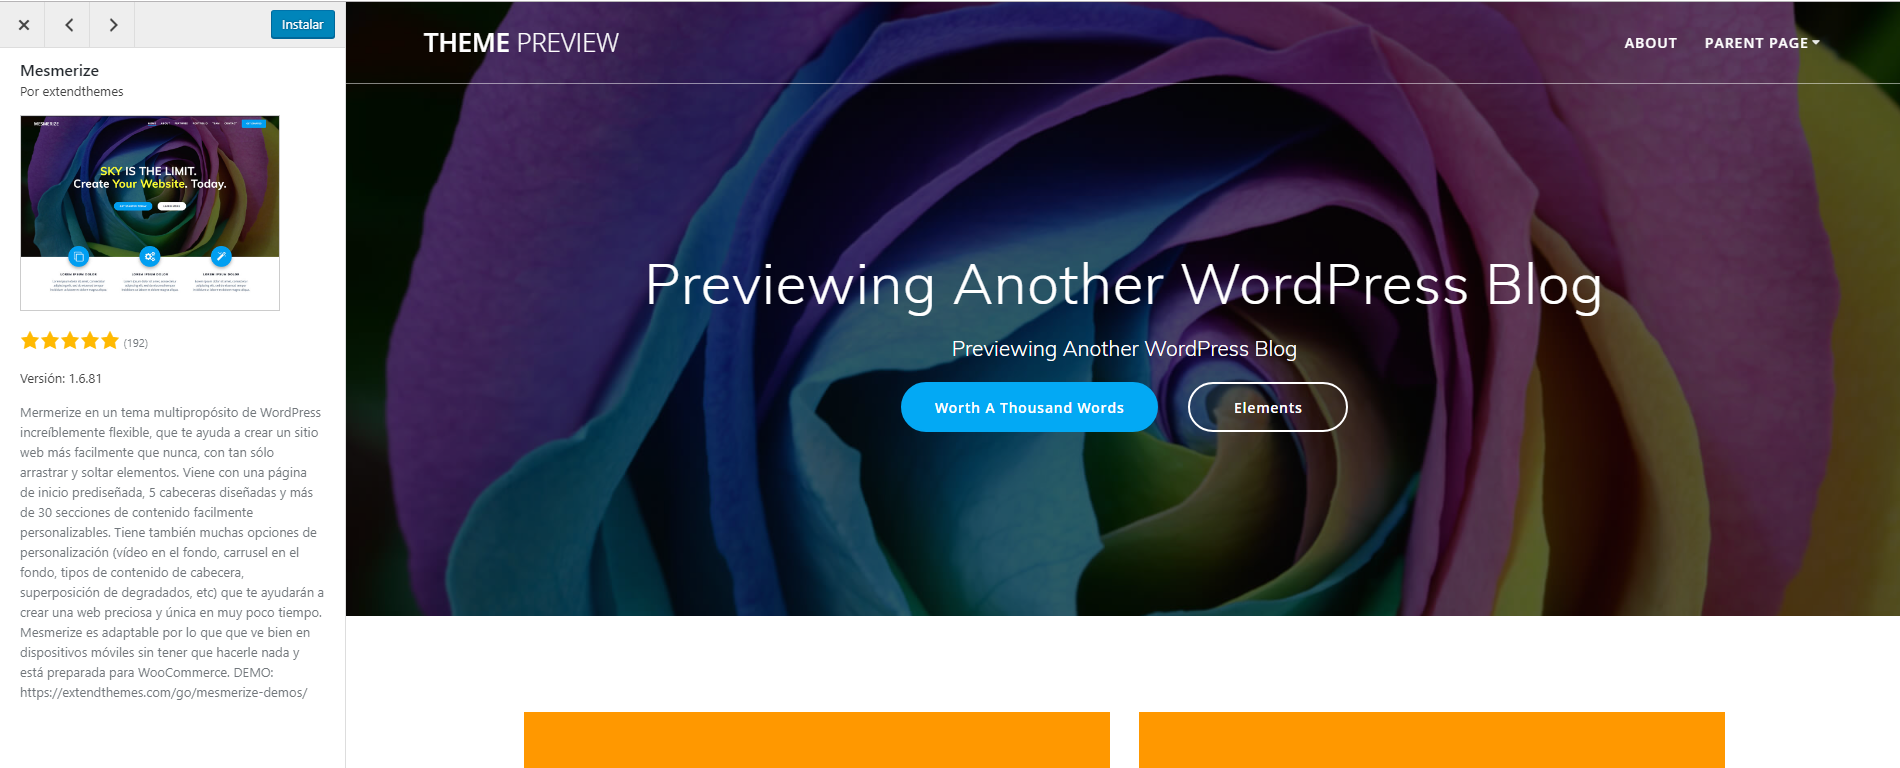 Vista previa de un tema en WordPress